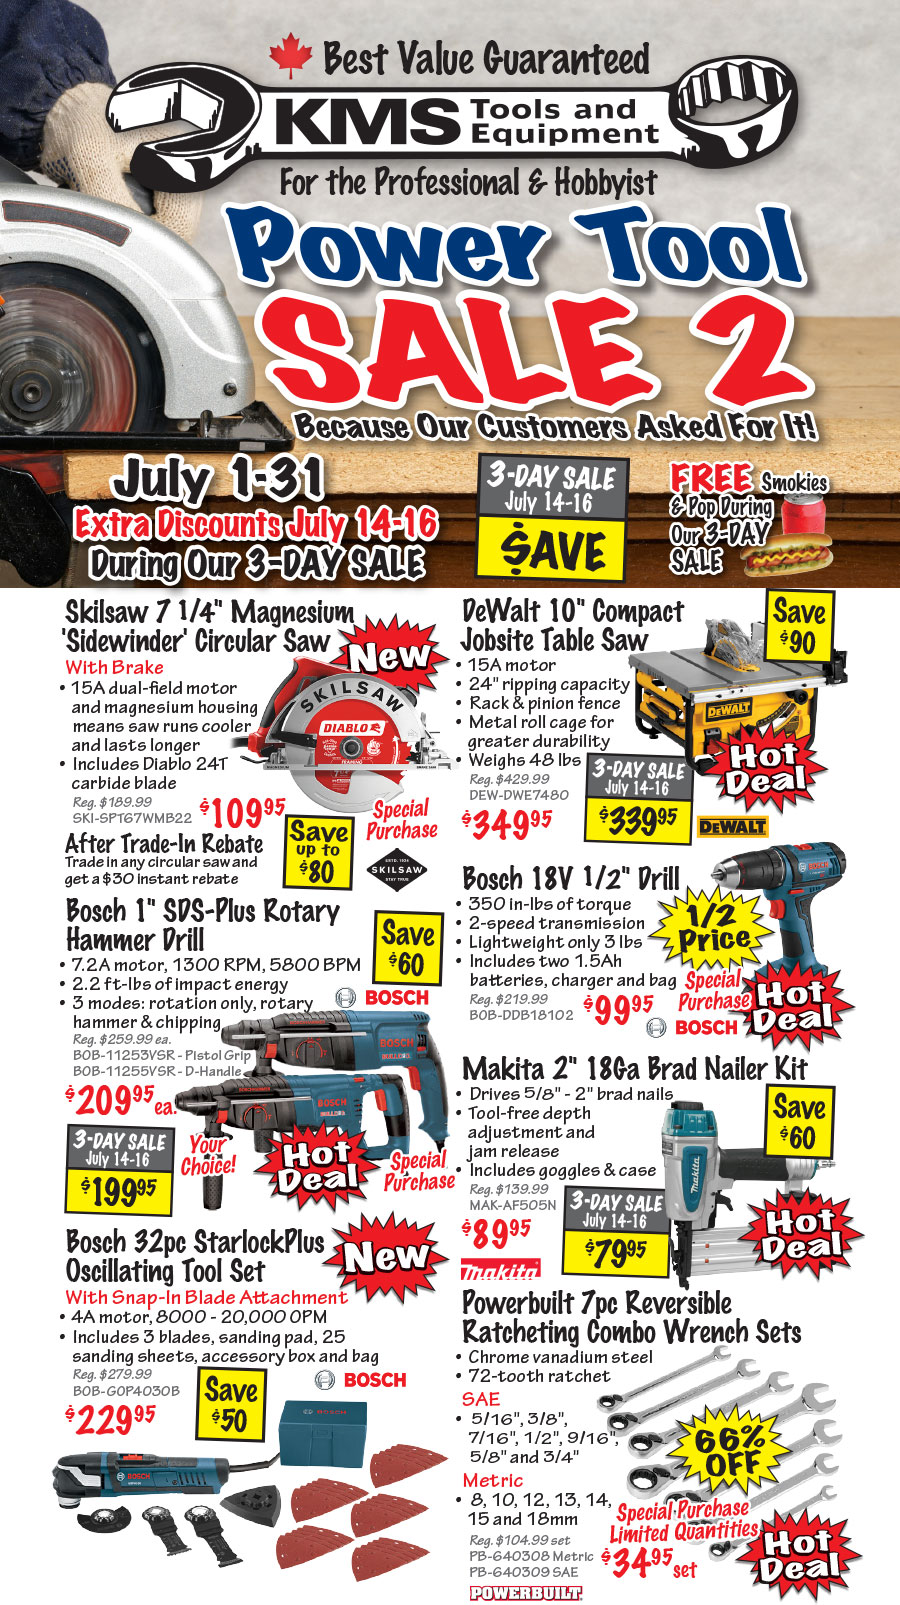 Power Tool Sale 2